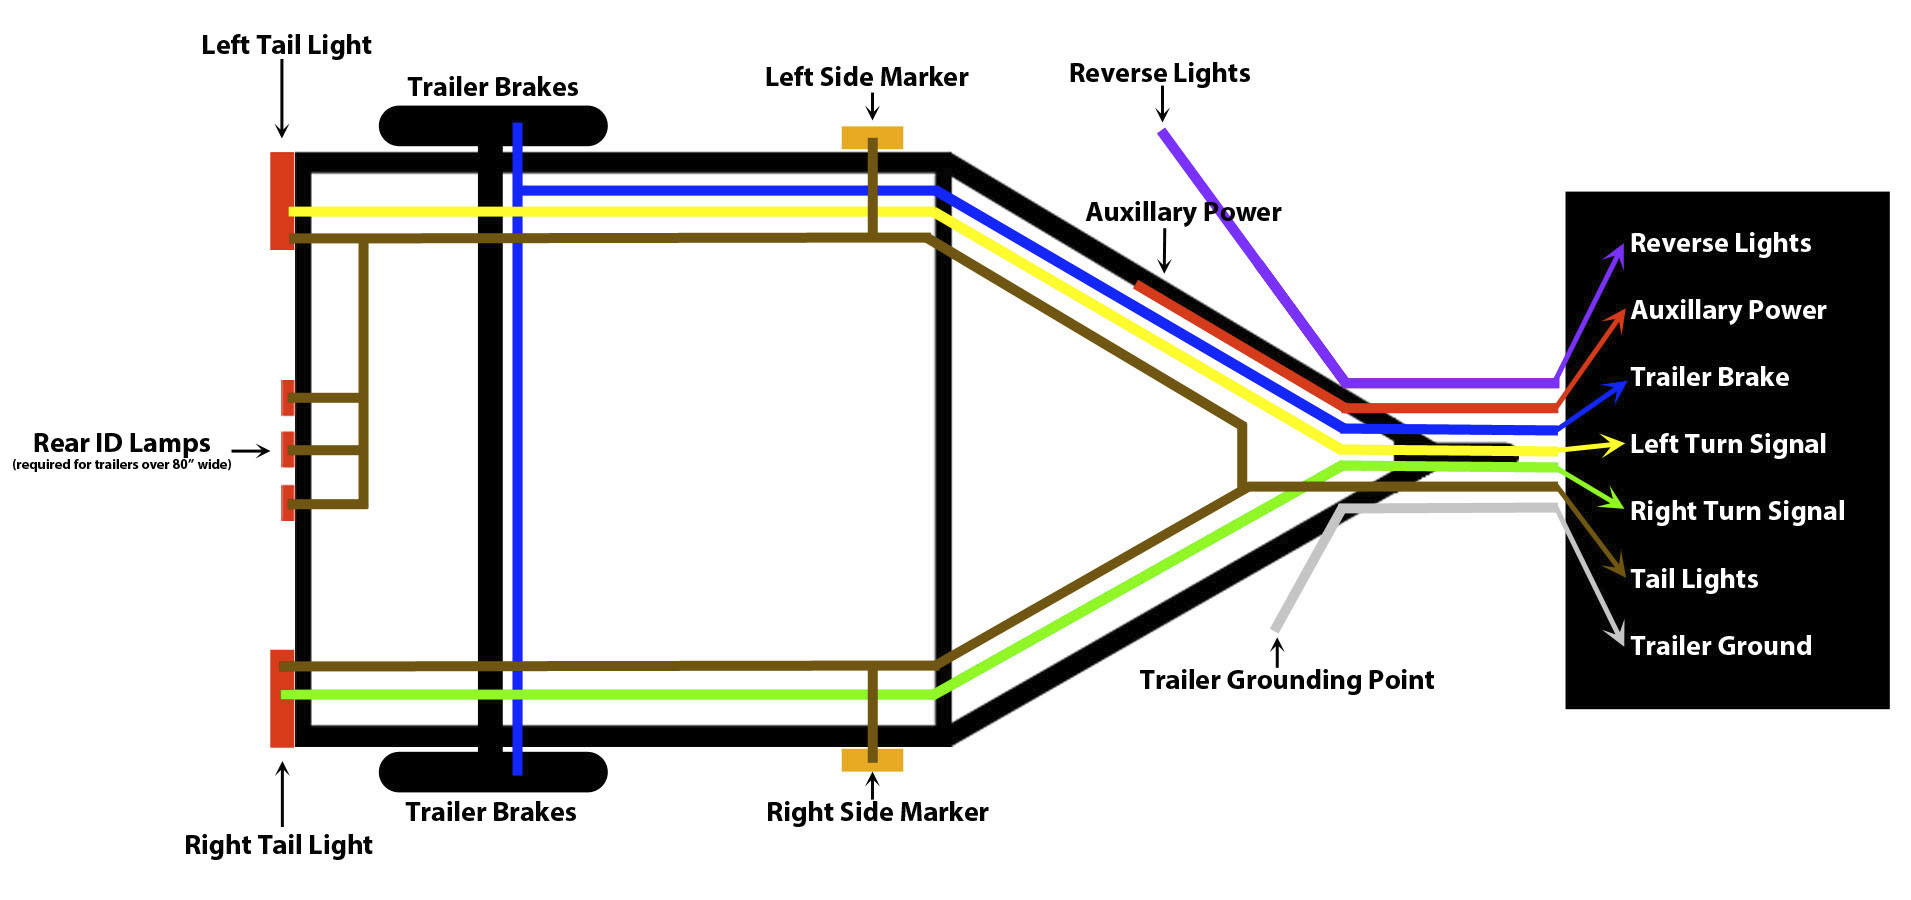 How To Wire Trailer Lights - Trailer Wiring Guide & Videos - 4 Wire Trailer Hitch Wiring Diagram